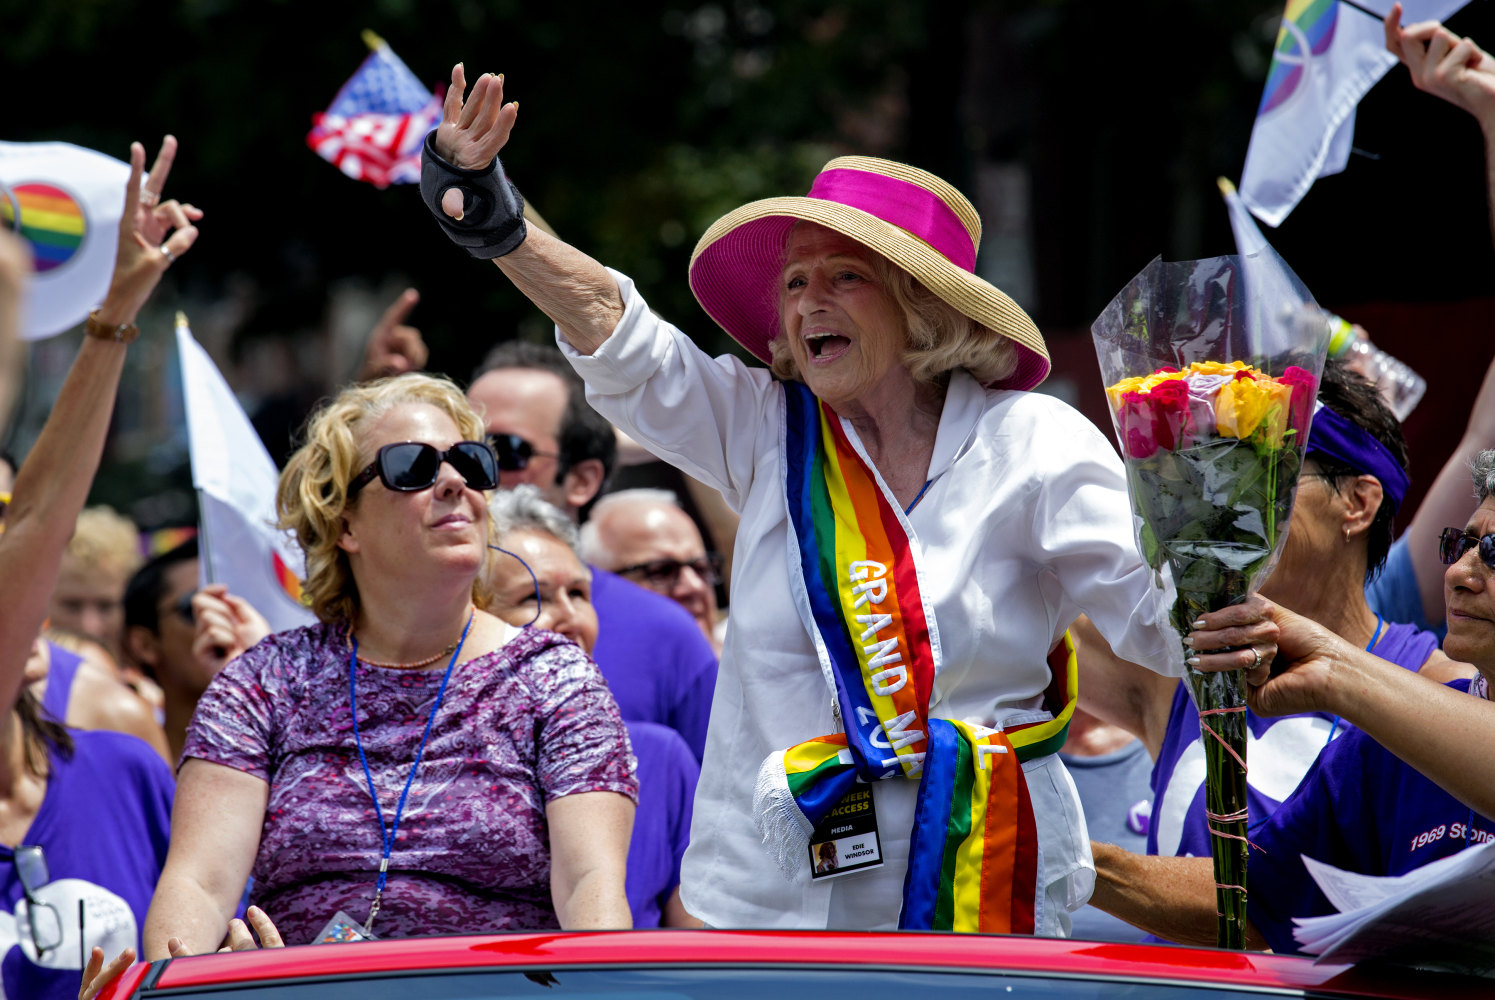 Edith Windsor is an Iconic Symbol of Love and LGBTQ Equality